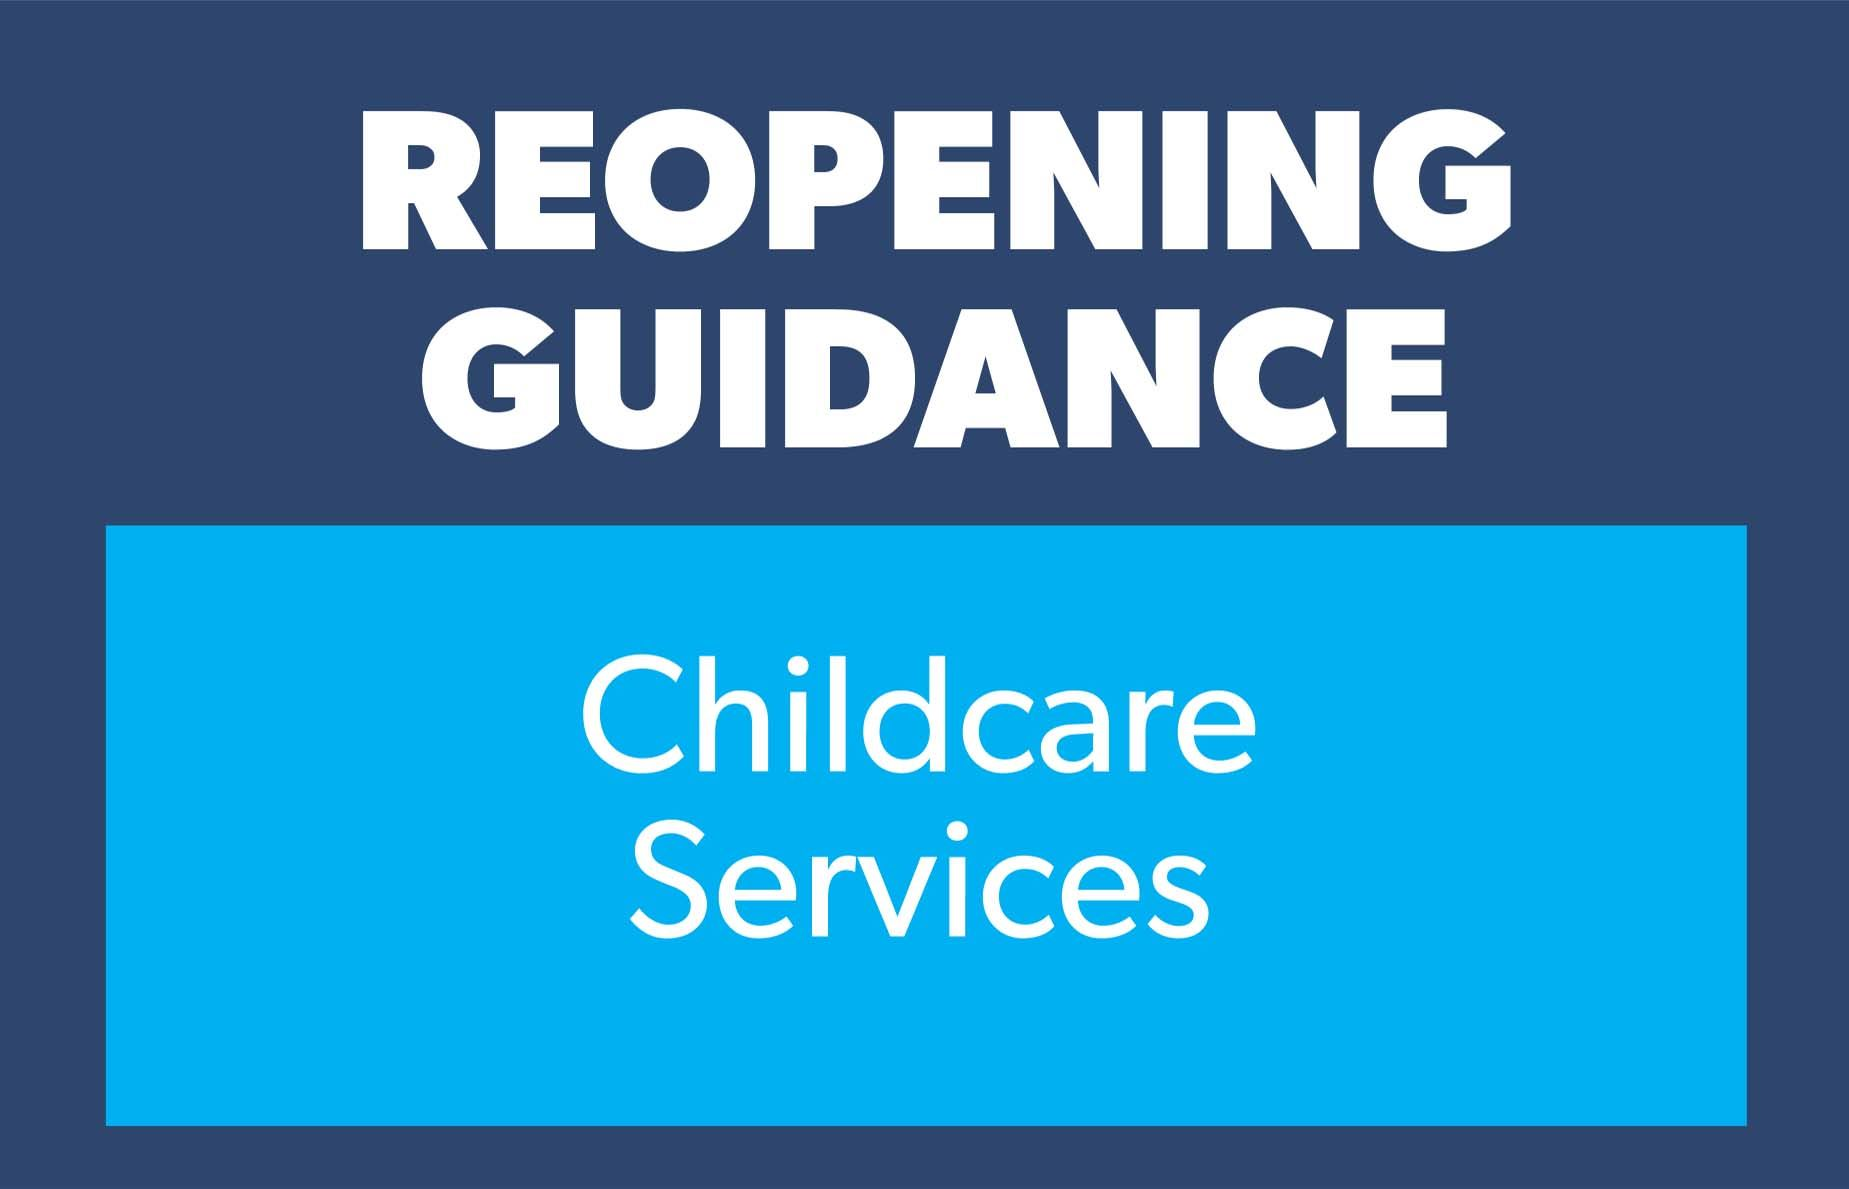 Guidance childcare